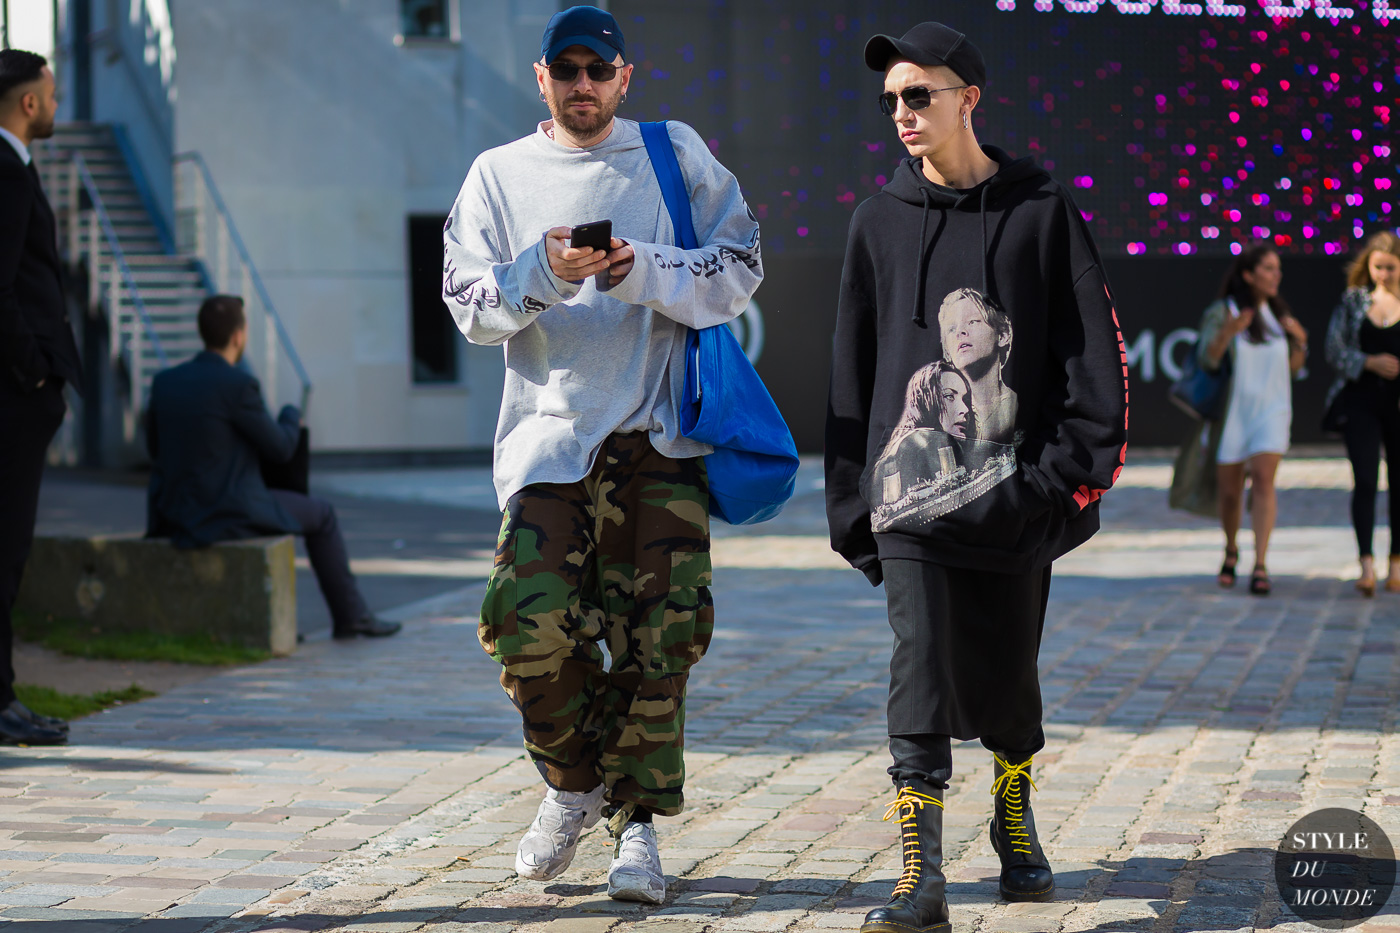 Demna Gvasalia and Loik Gomez Street Style Street Fashion Streetsnaps by STYLEDUMONDE Street Style Fashion Photography